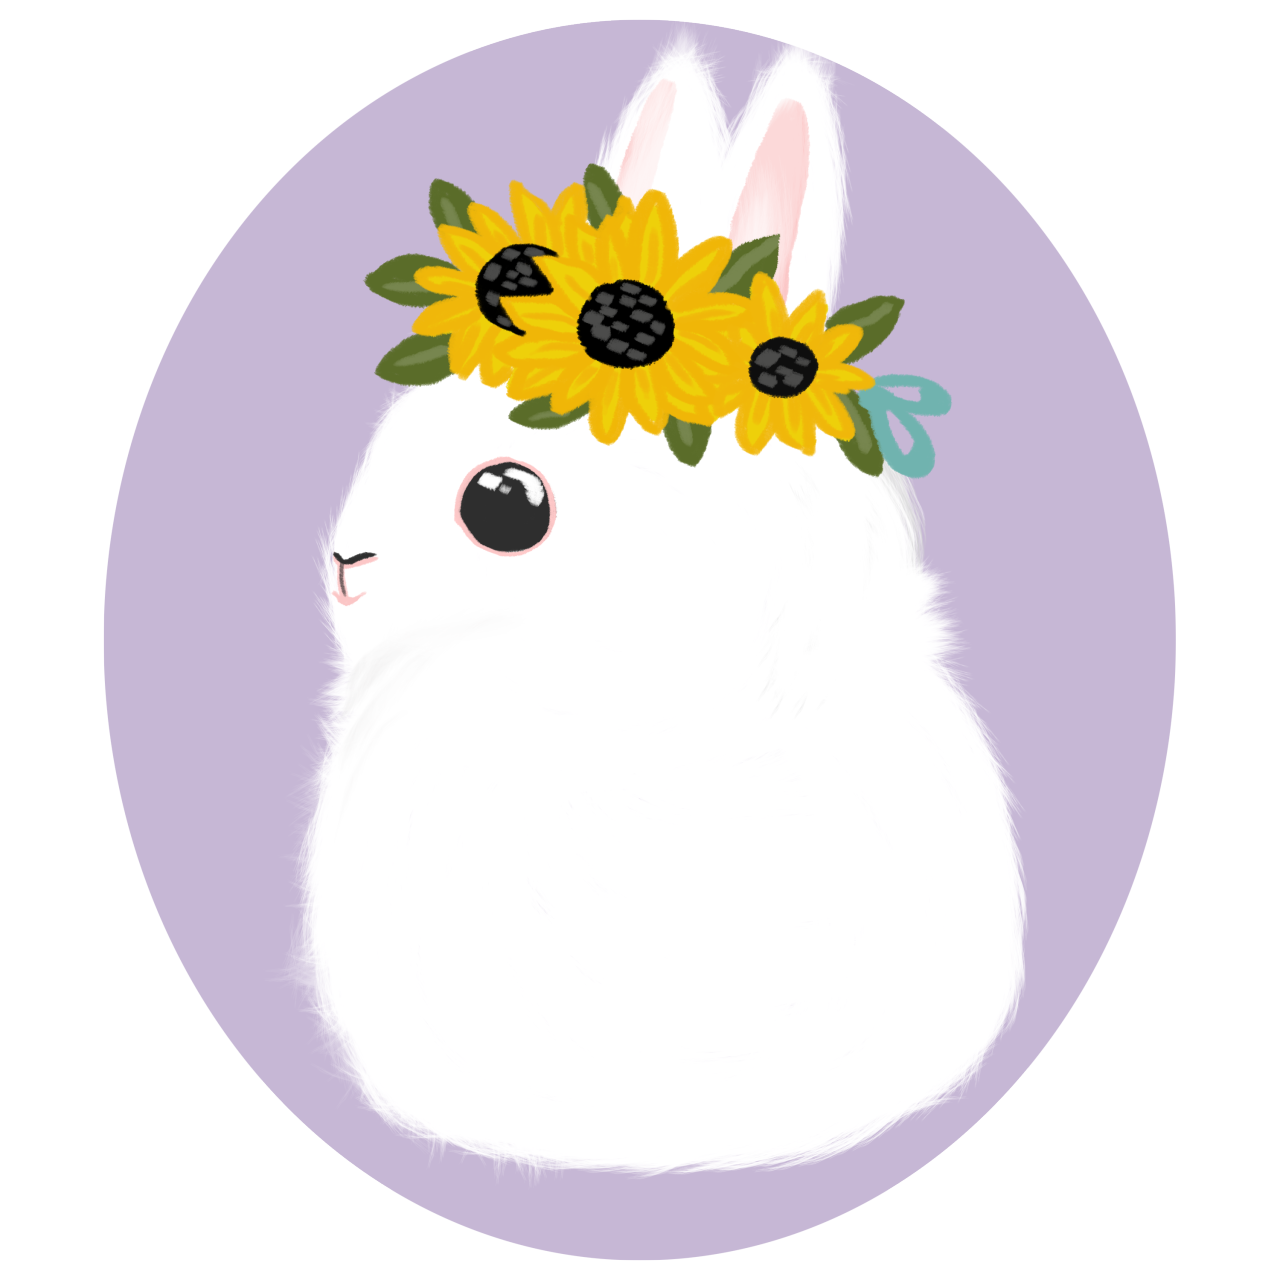 Bunny flower crown clipart picture black and white library Spring and Summer Bunnies (as long as you credit... picture black and white library